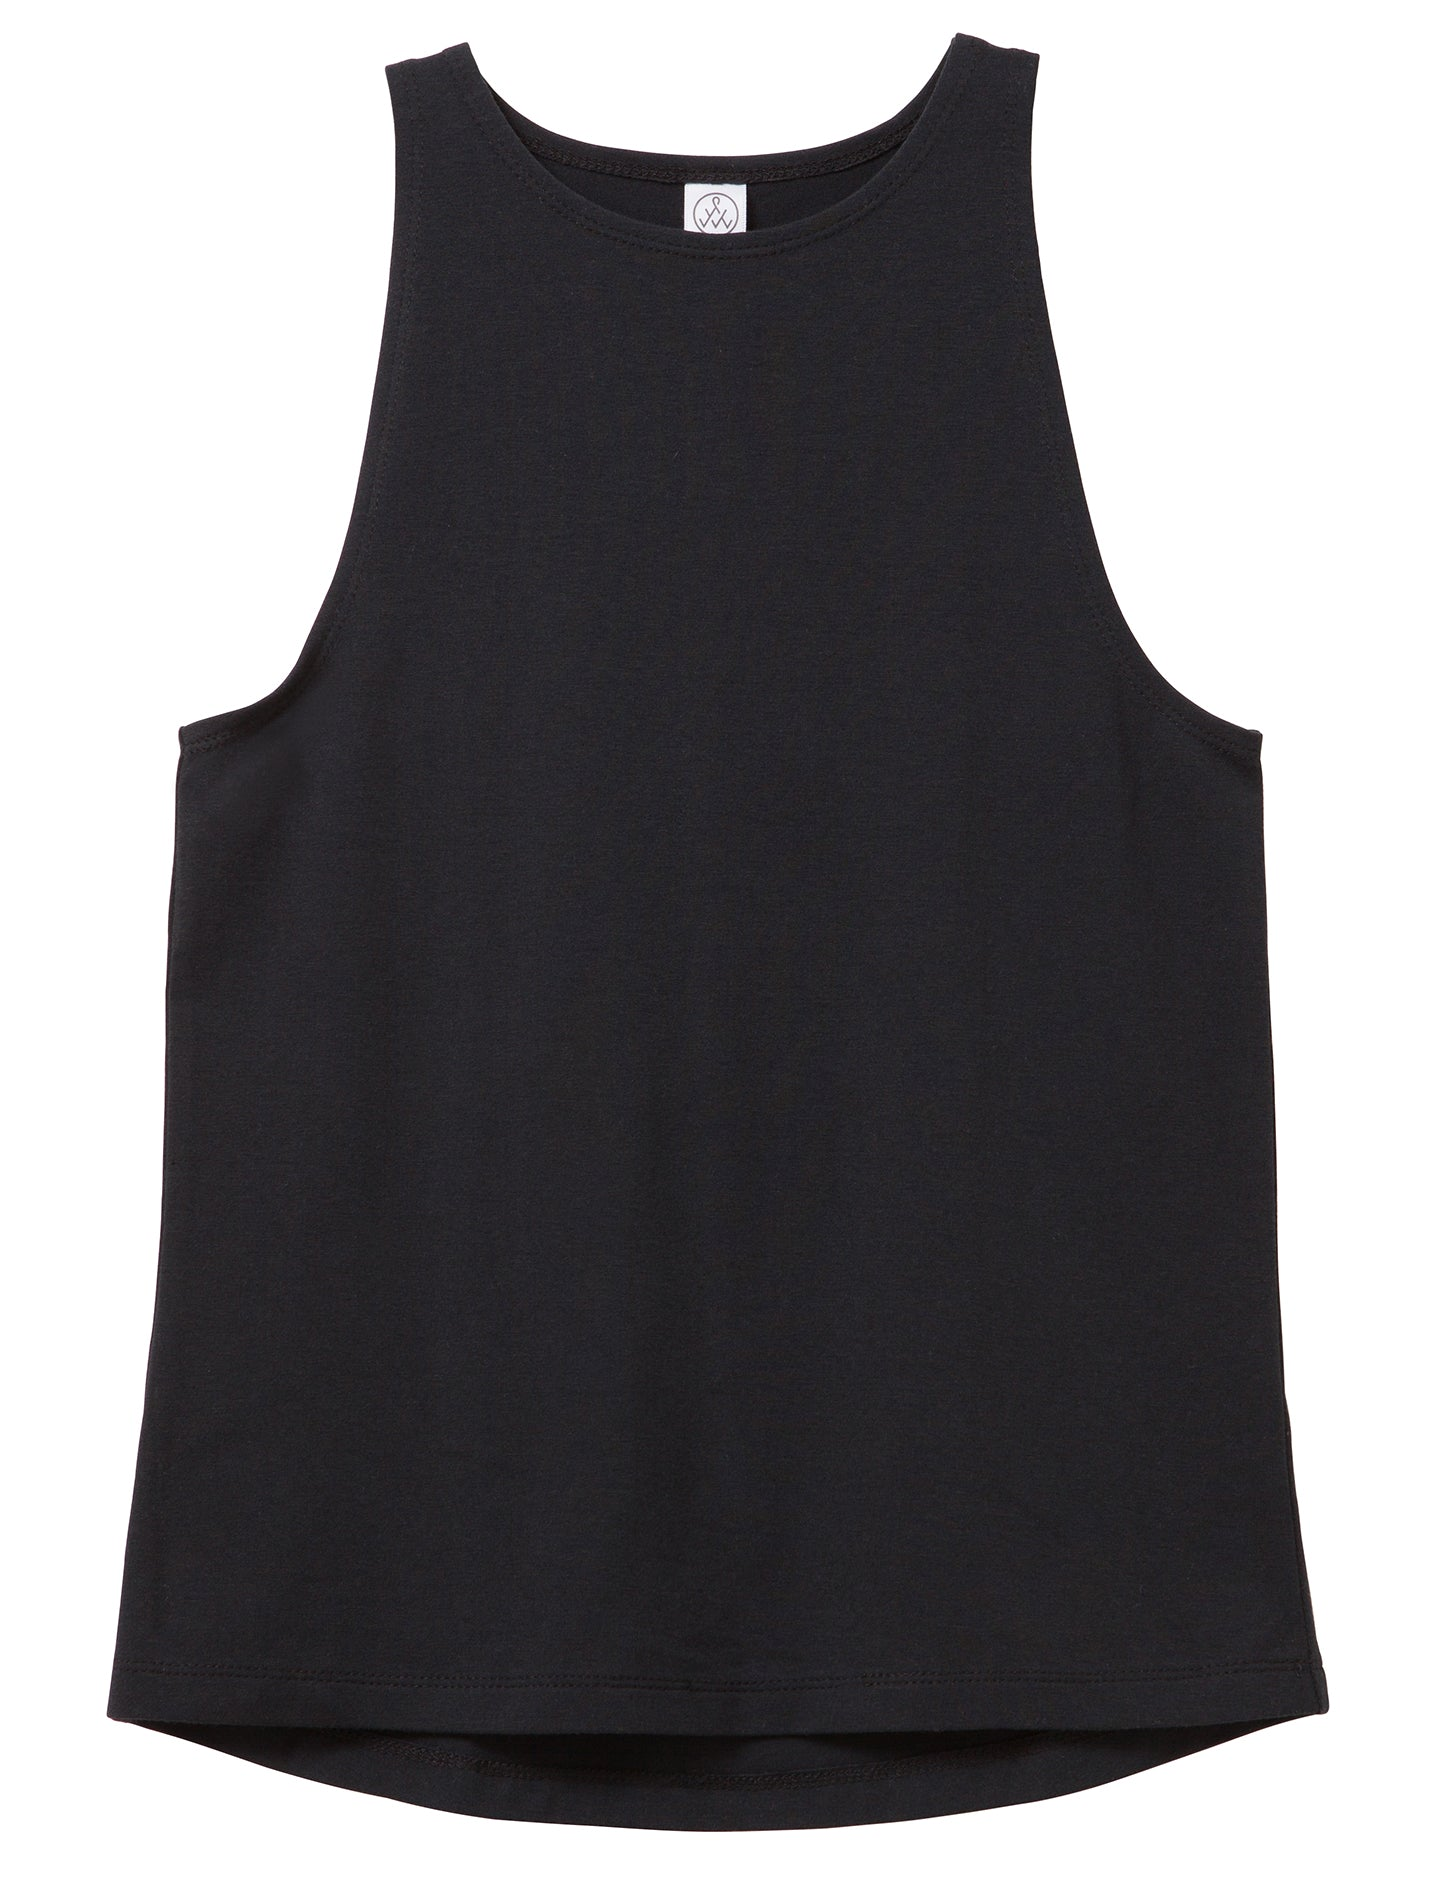 High Neck Cotton Modal Fitted Tank Top - Black